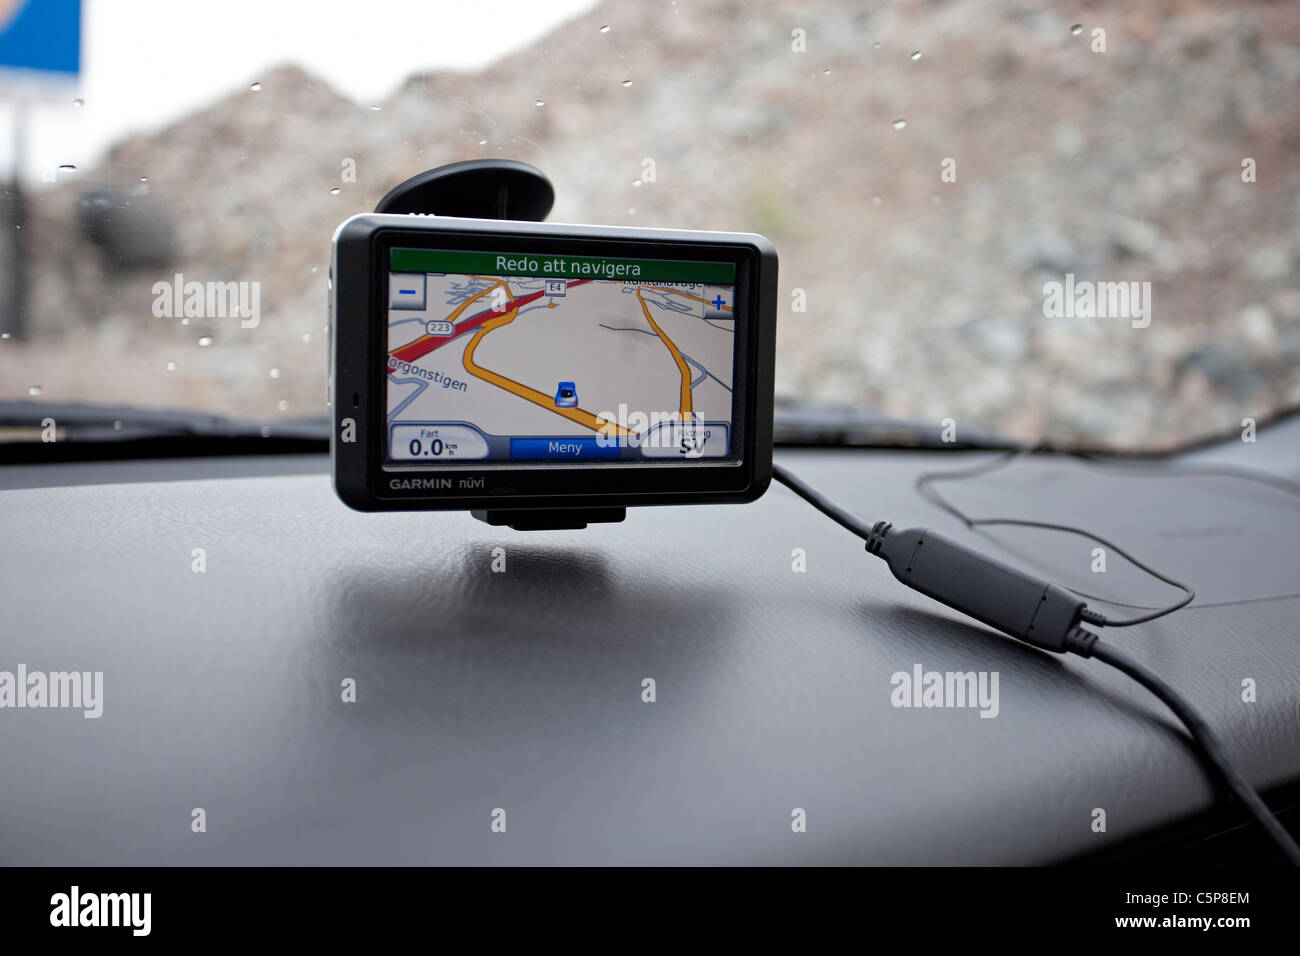 GPS for navigation in the car - Stock Image